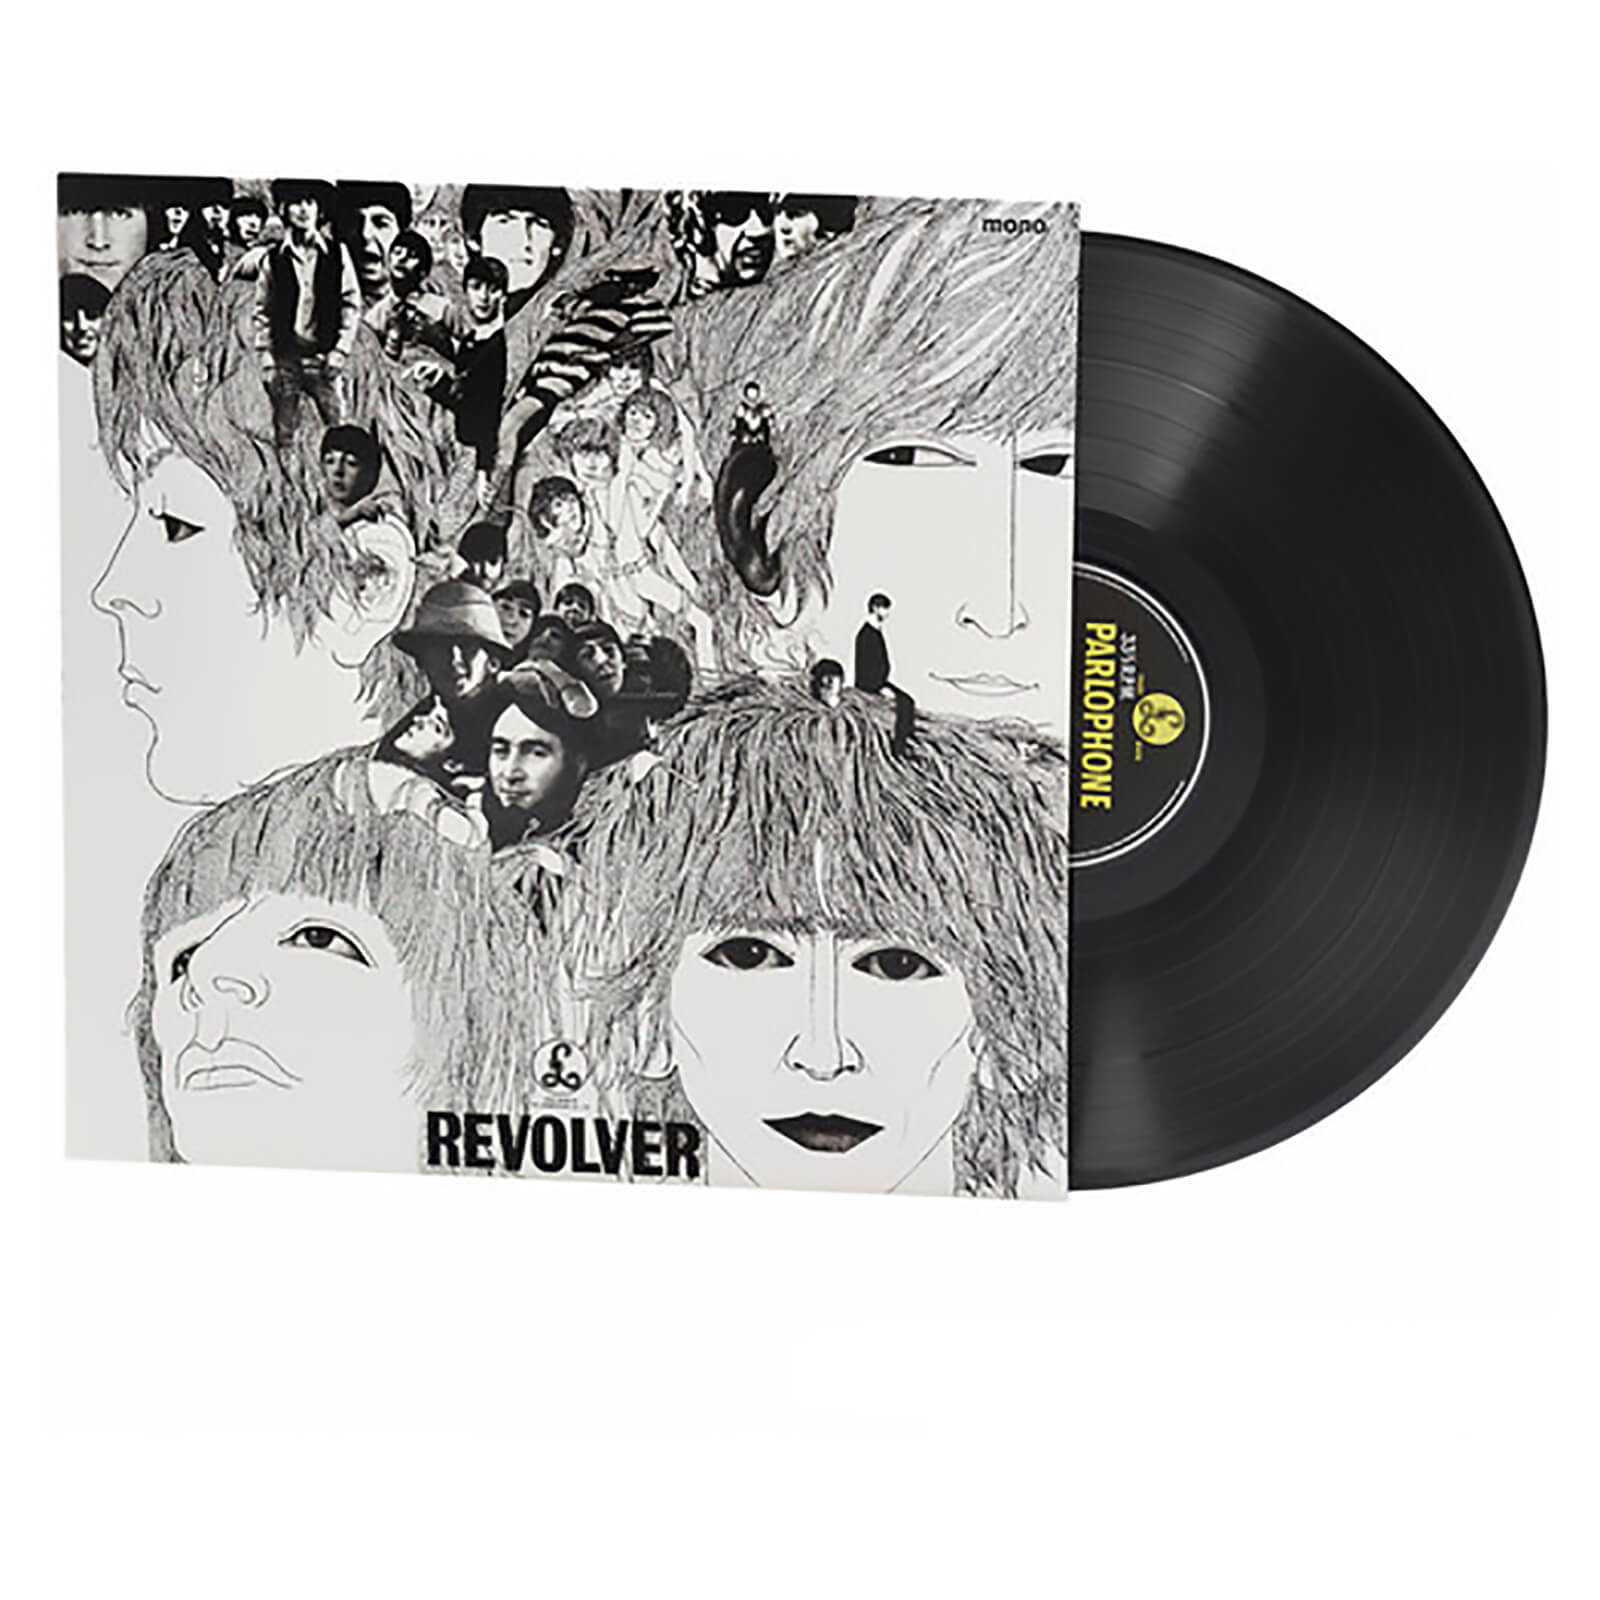 The Beatles - Revolver - Vinyl